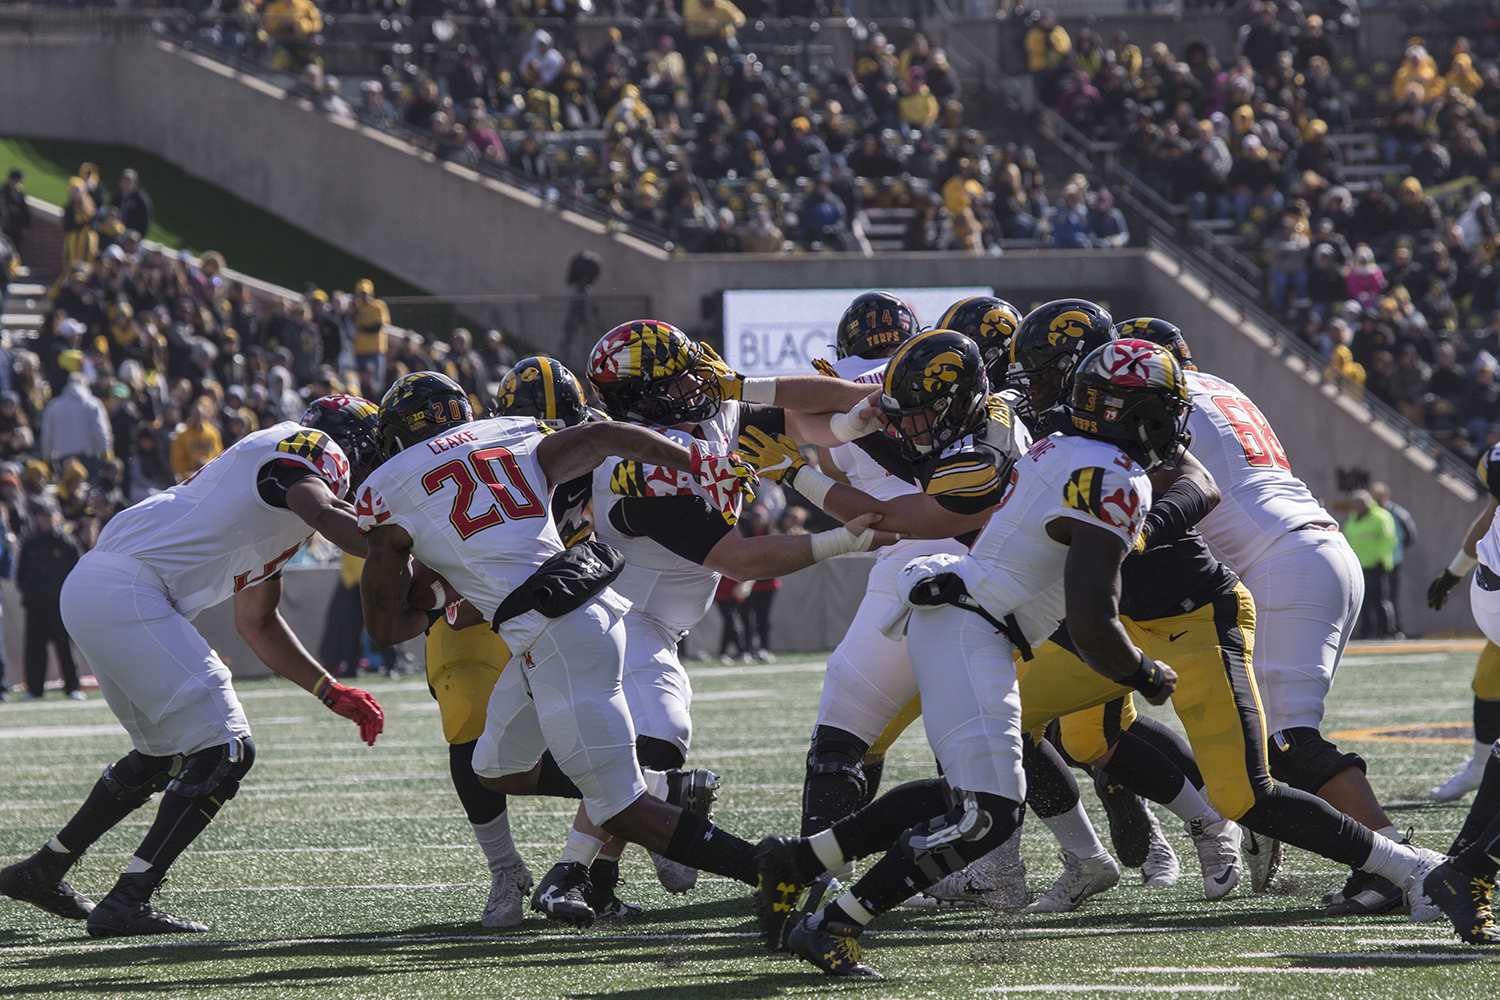 Players+push+each+other+during+the+Iowa+vs.+Maryland+game+at+Kinnick+stadium+on+Saturday+Oct.+20%2C+2018.+The+Hawkeyes+defeated+the+Terrapins+23-0.+